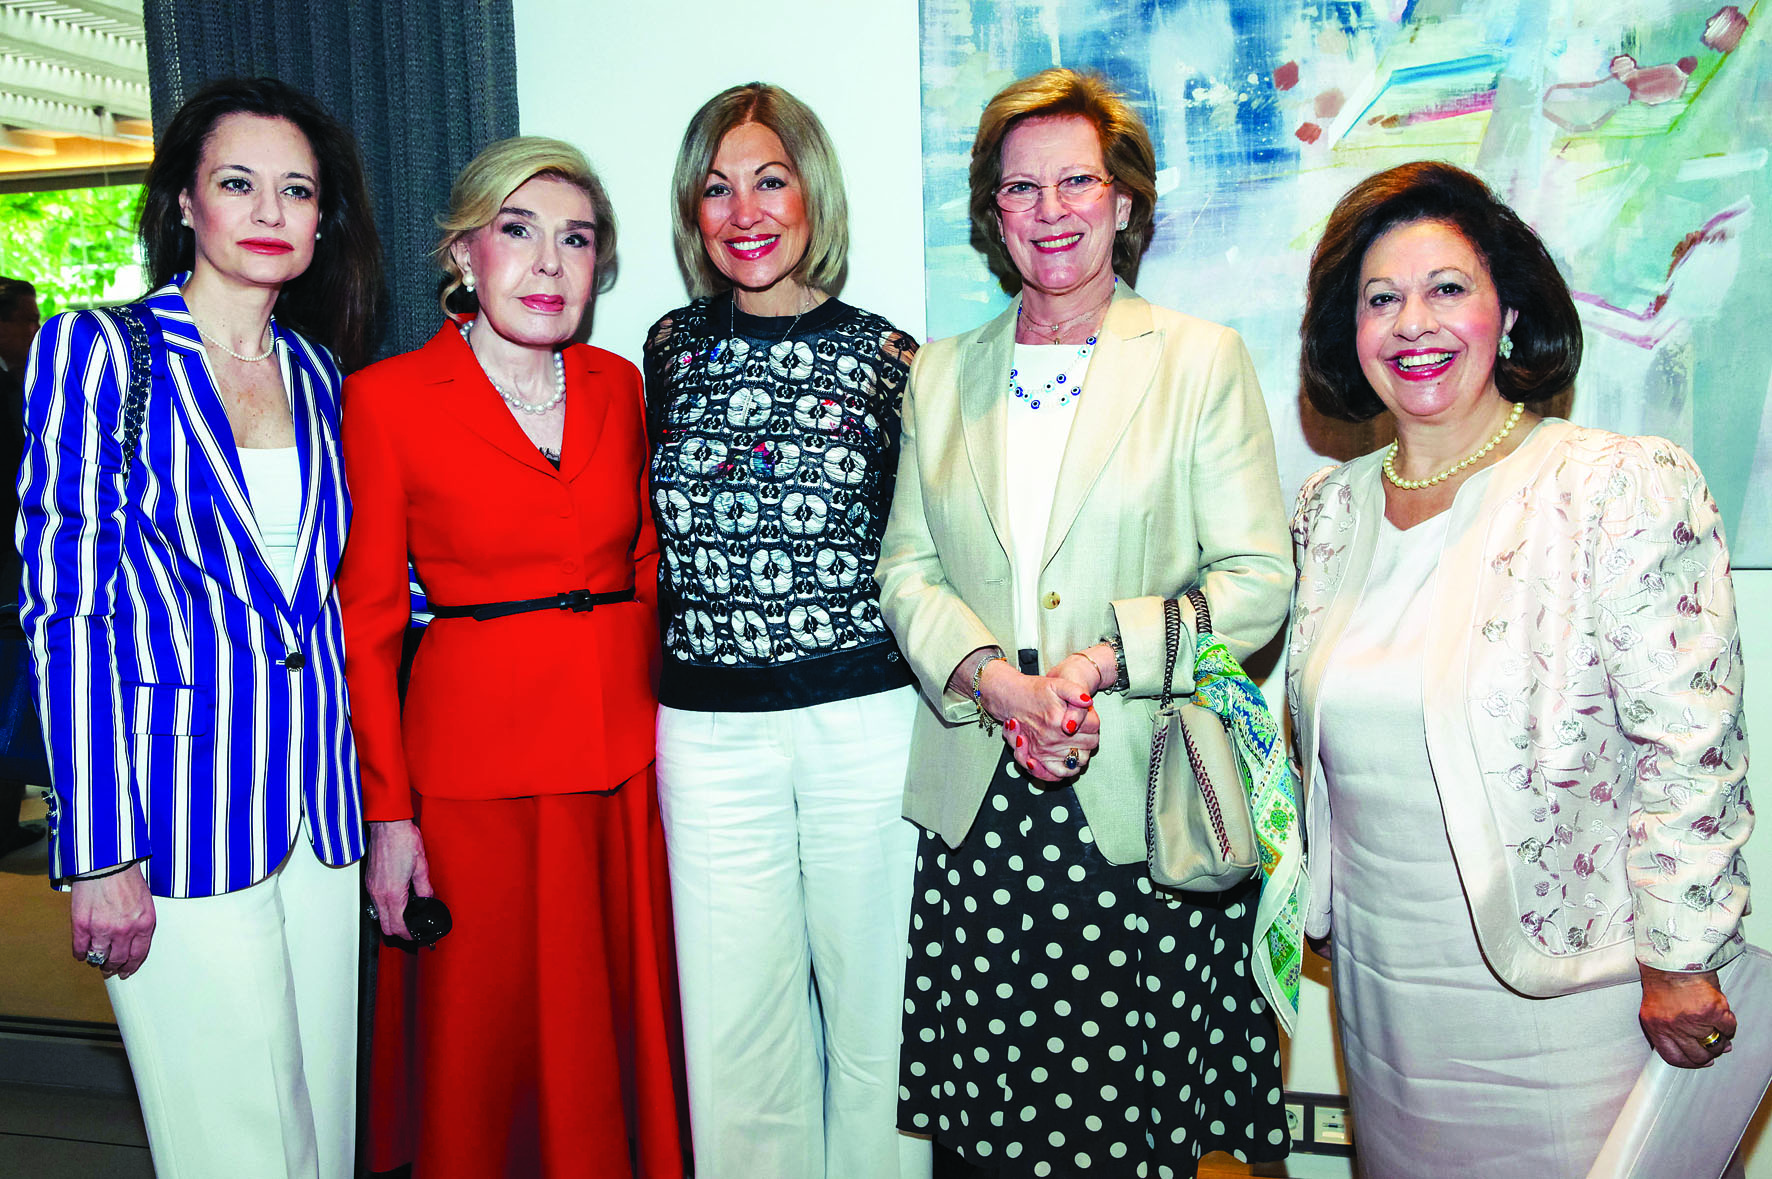 Stella Alexia Mantzari, Marianna Vardinoyianni, Eleni Bousis, Queen Anna Maria of Greece, HRH Crown Princess Katherine of Serbia